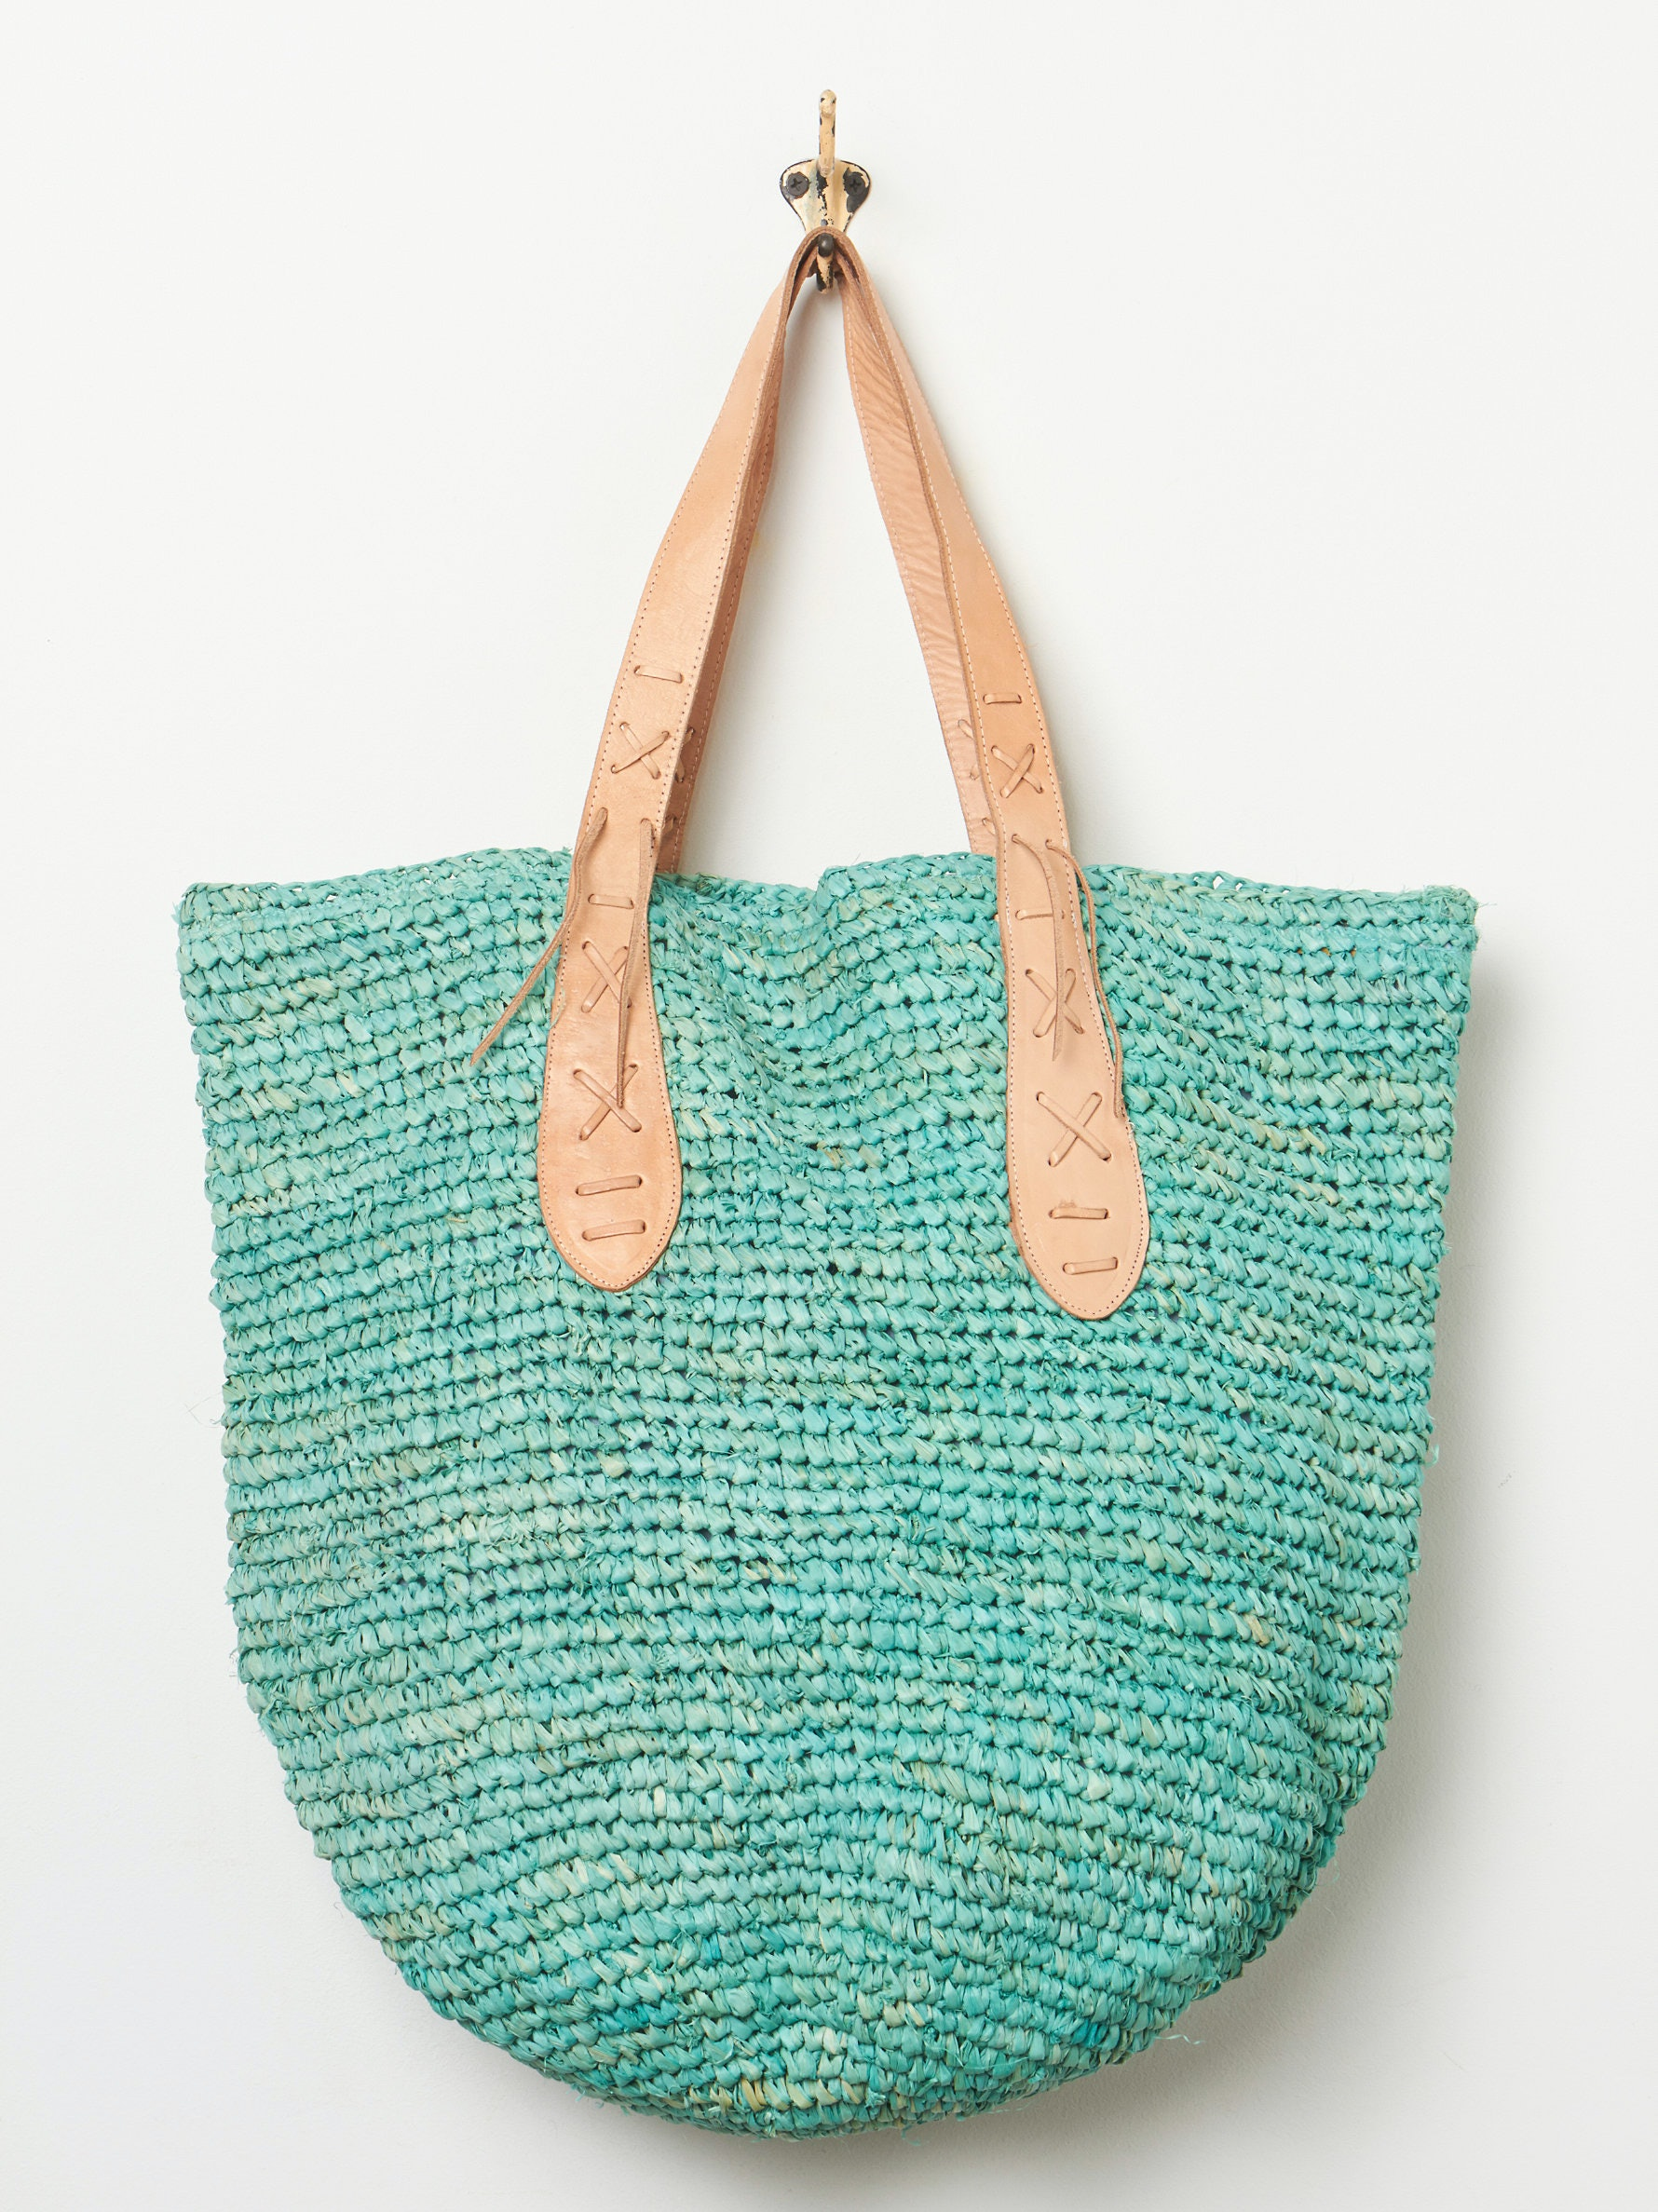 17 Beach Bags To Help Carry Around All Your Sun Supplies This Summer